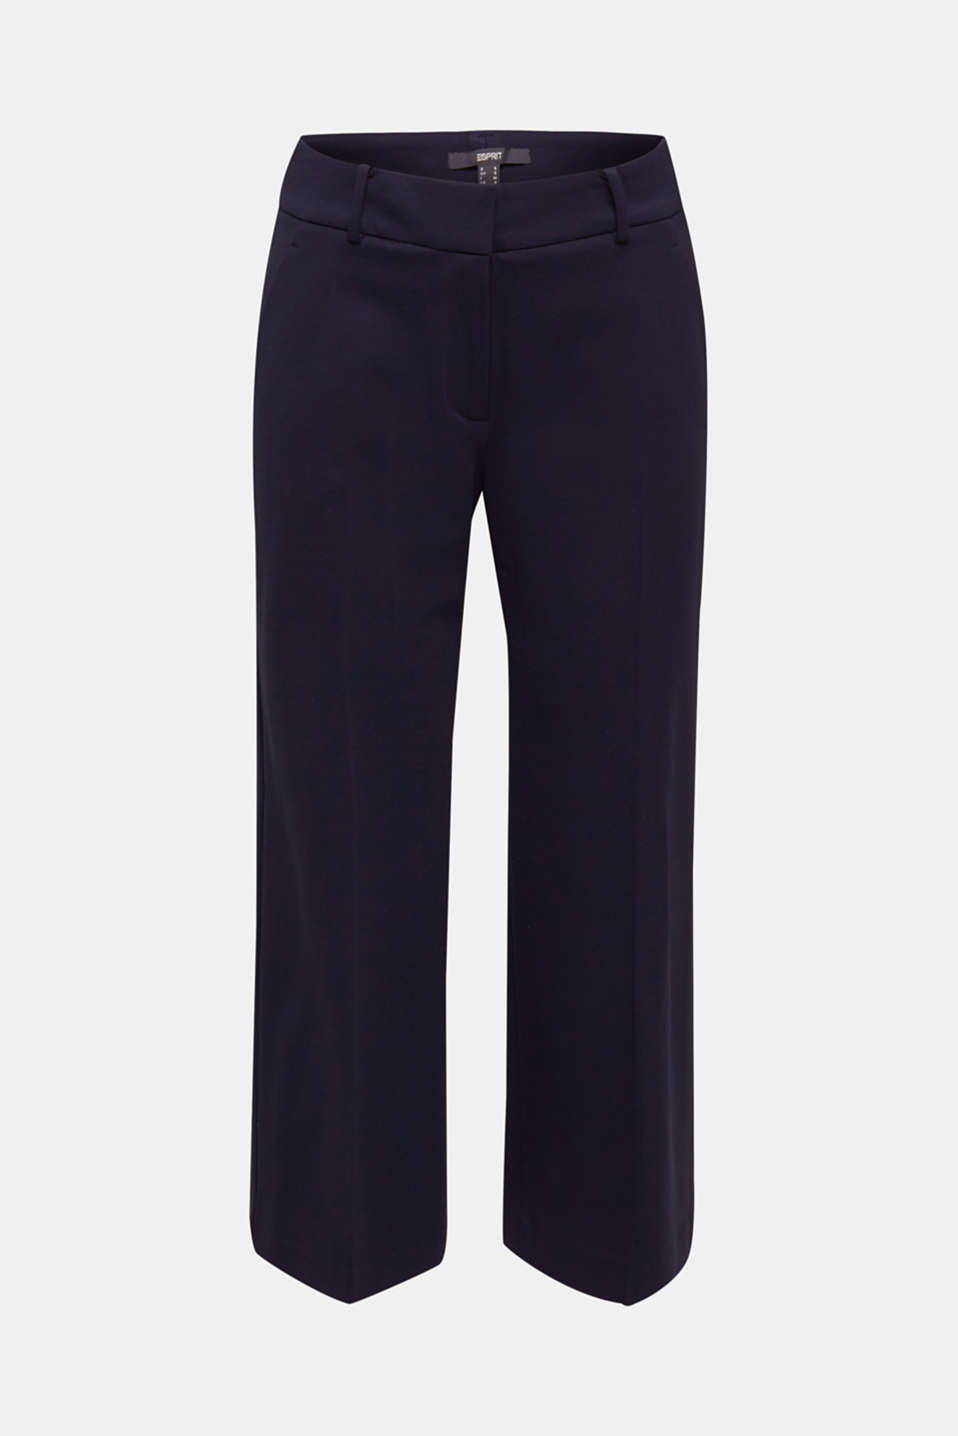 Stretch jersey culottes, NAVY, detail image number 7